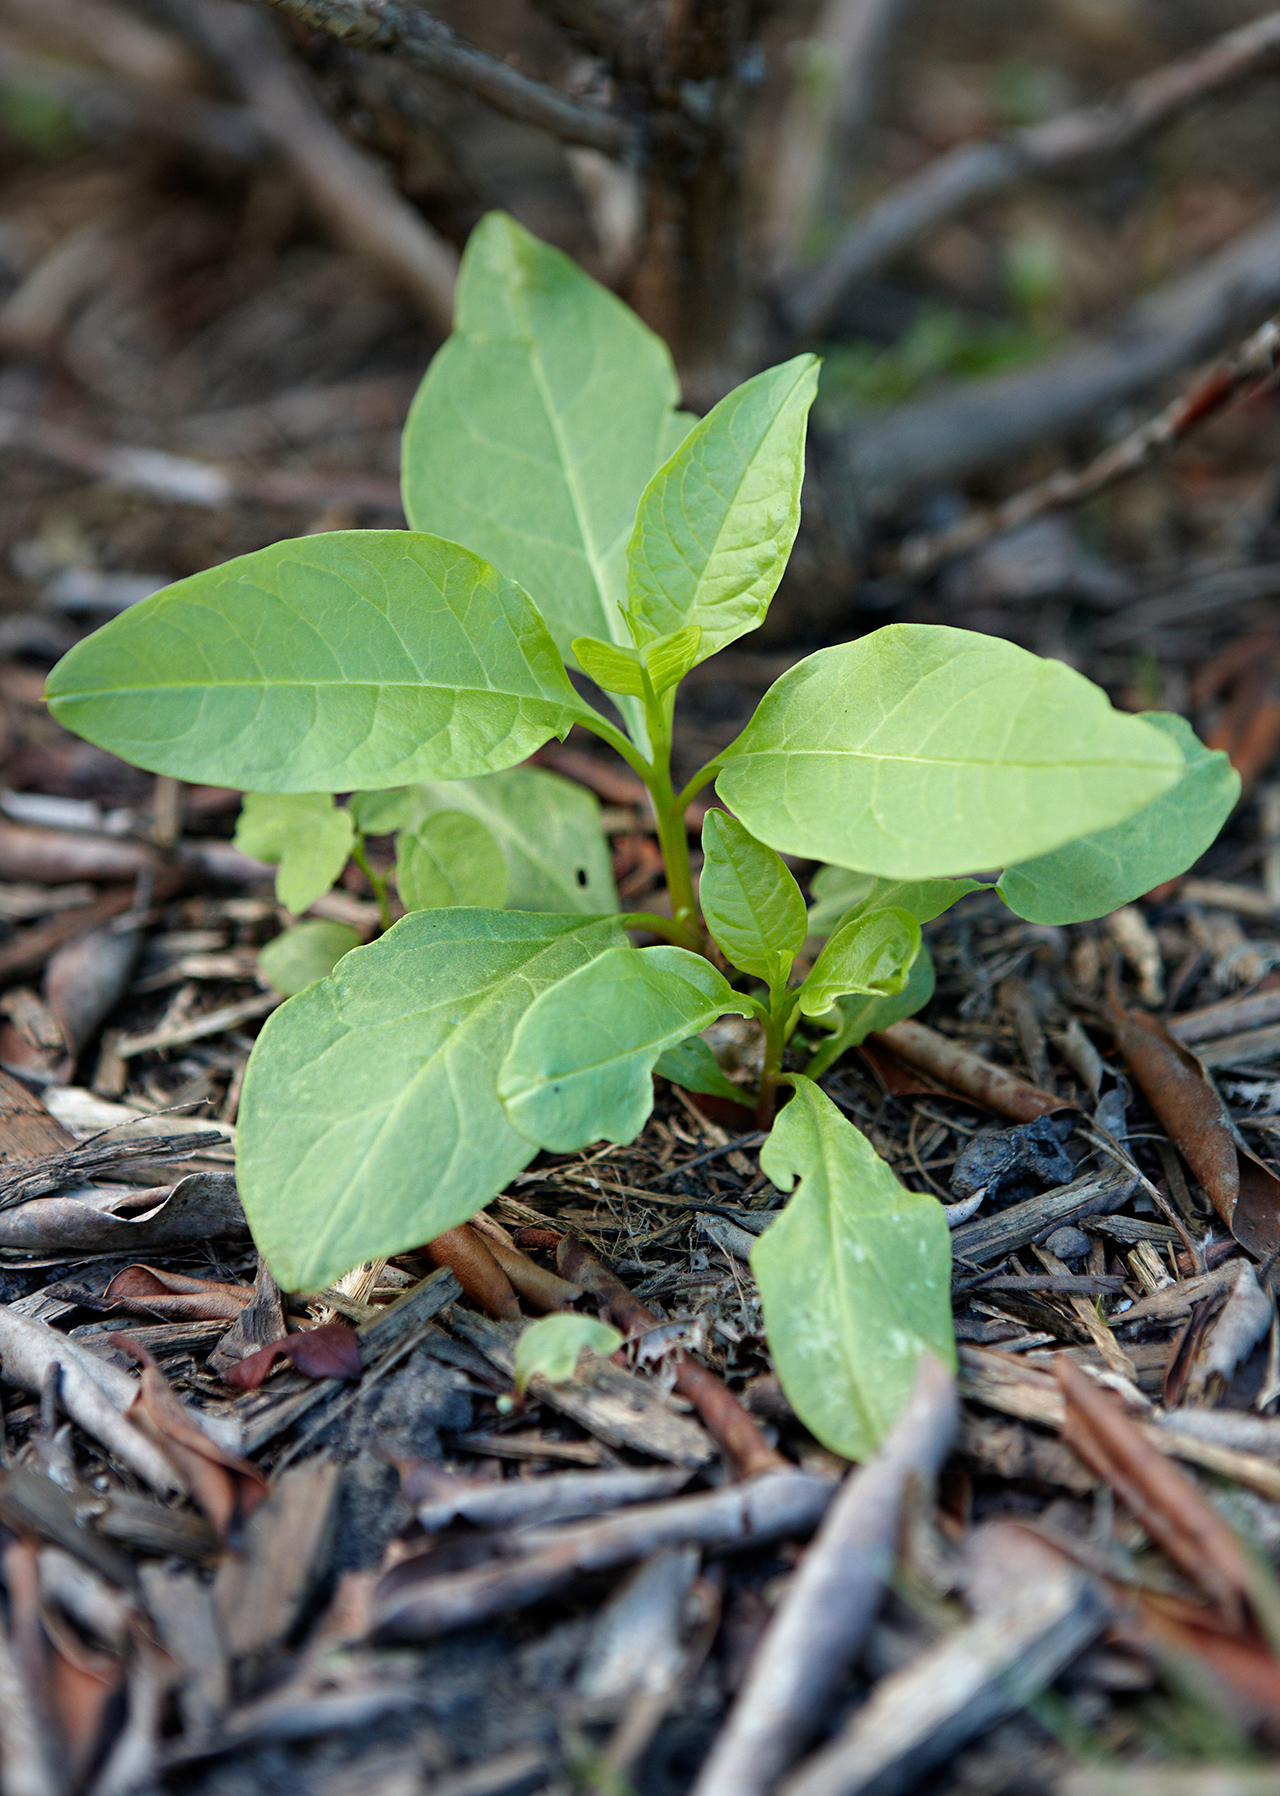 detail of pokeweed emerging from dirt